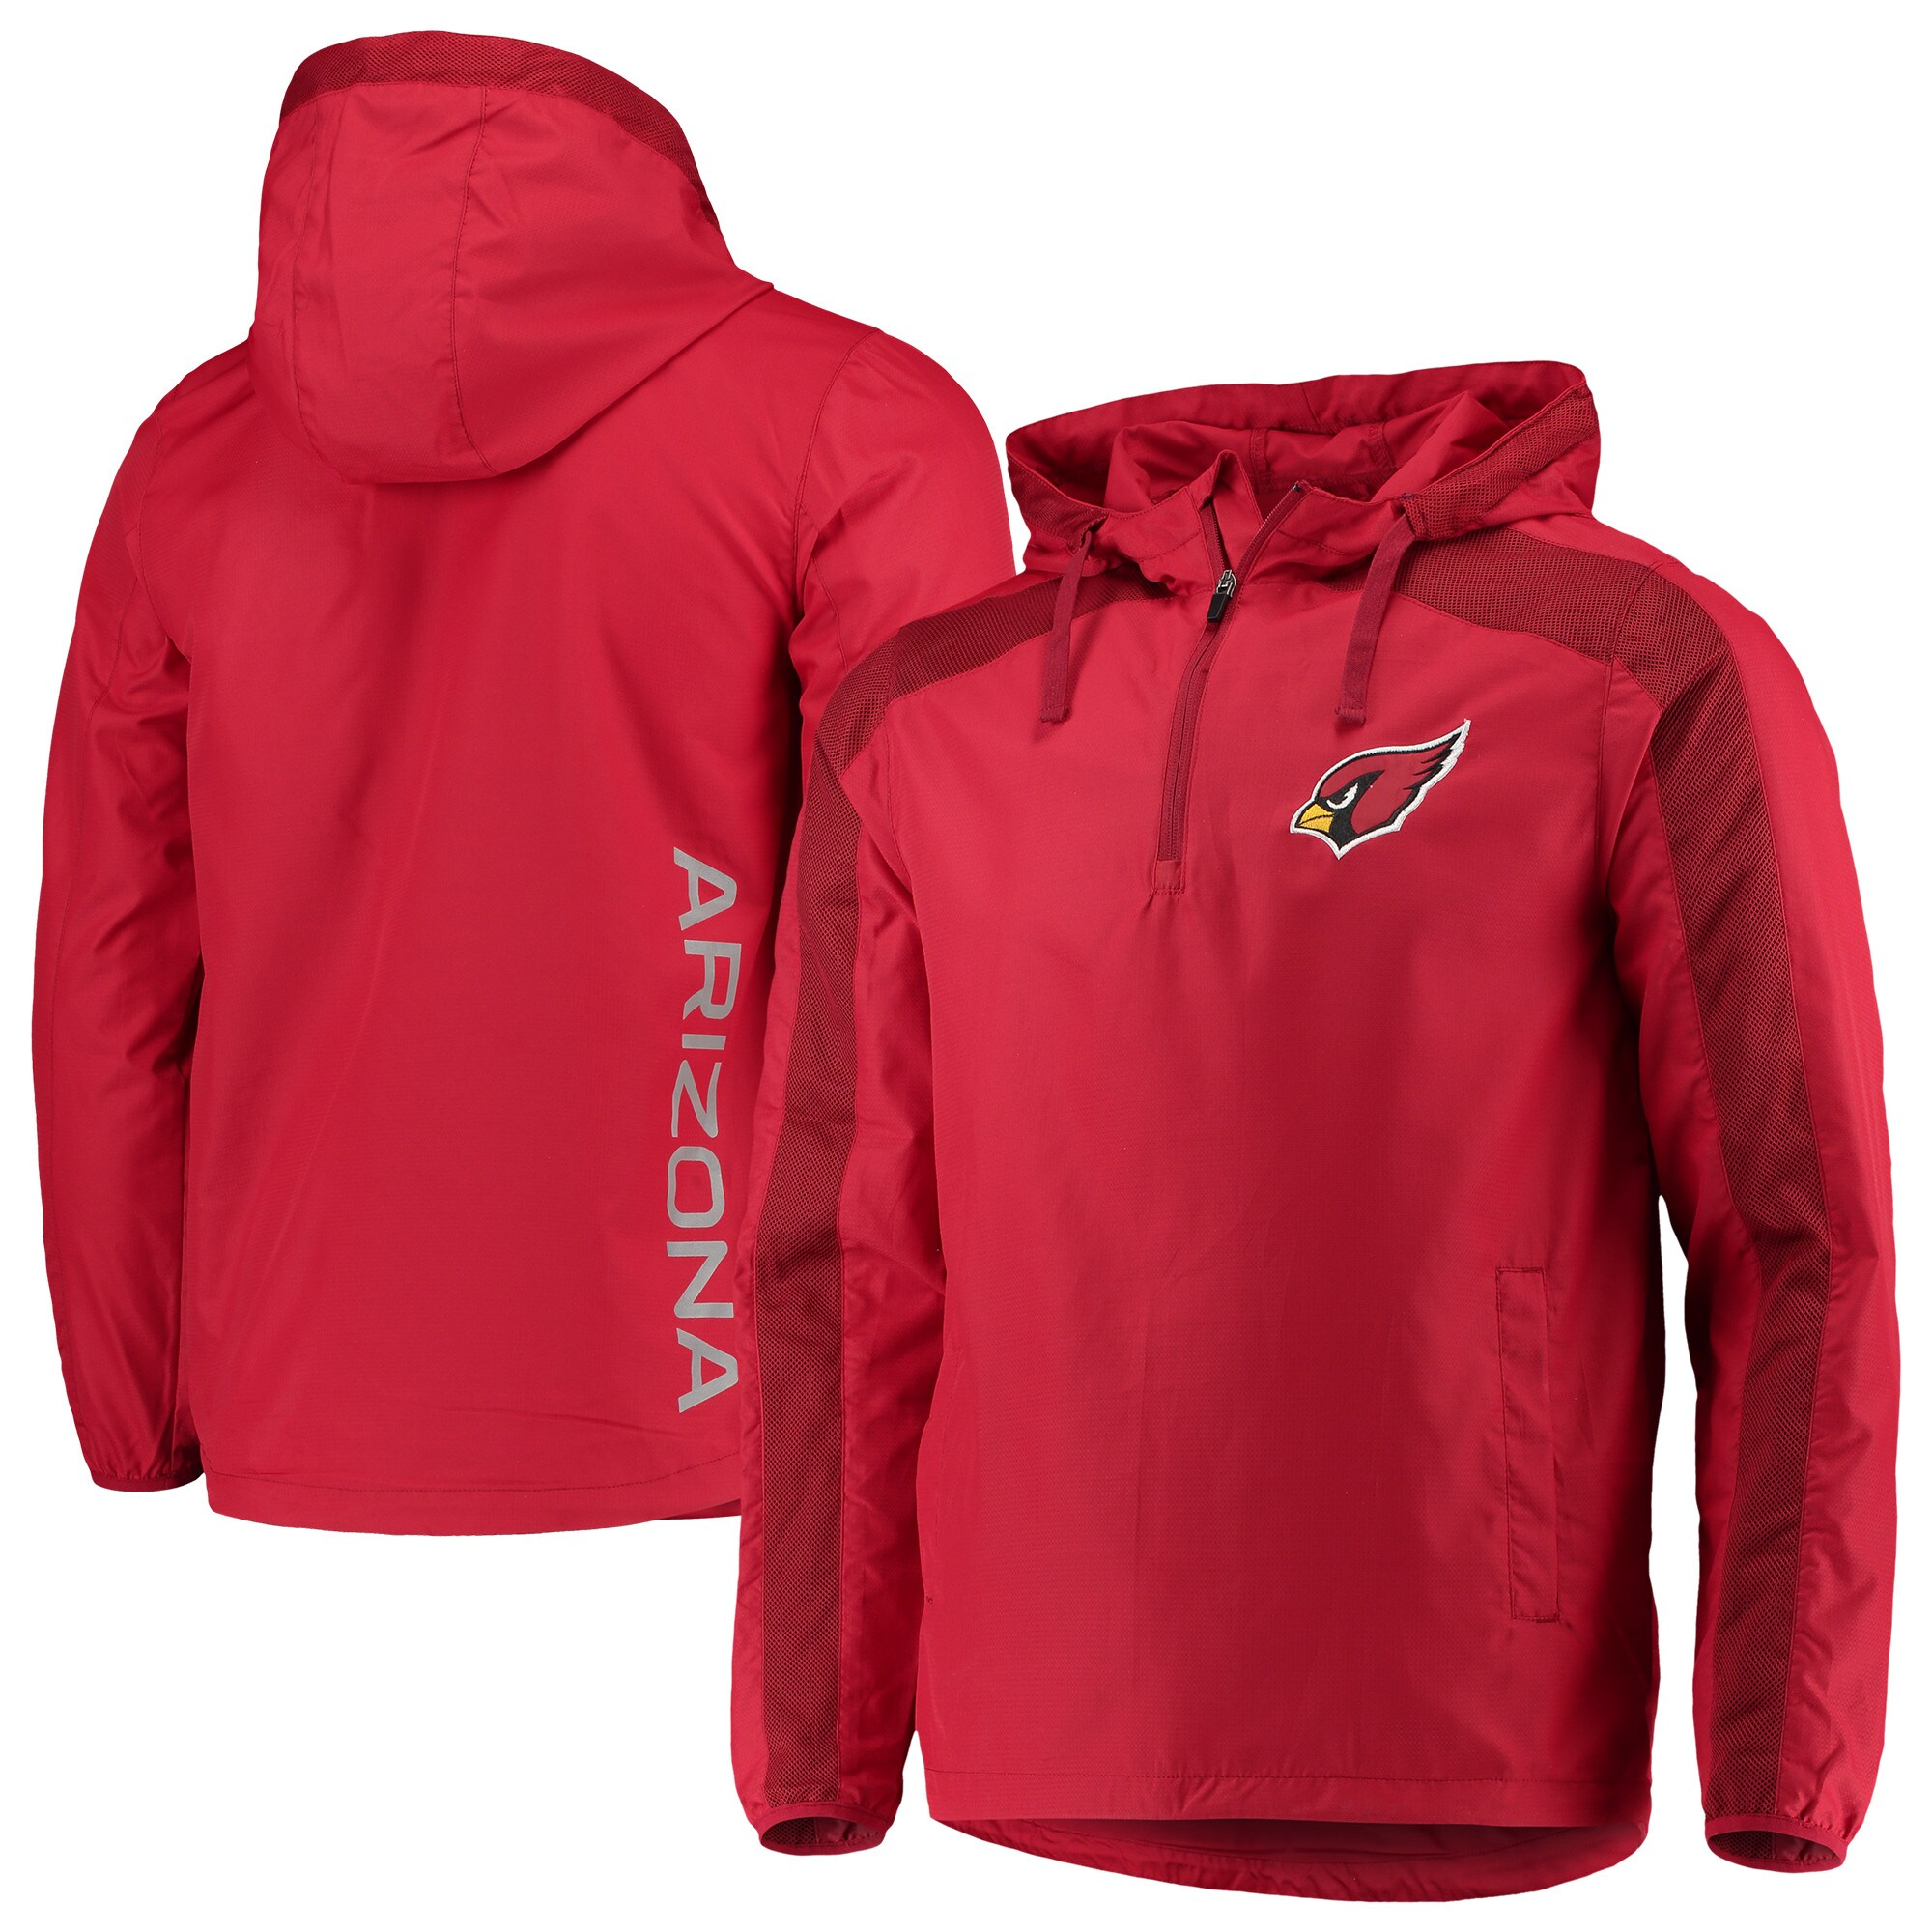 Arizona Cardinals G-III Sports by Carl Banks Lineup Hooded Half-Zip Jacket - Cardinal